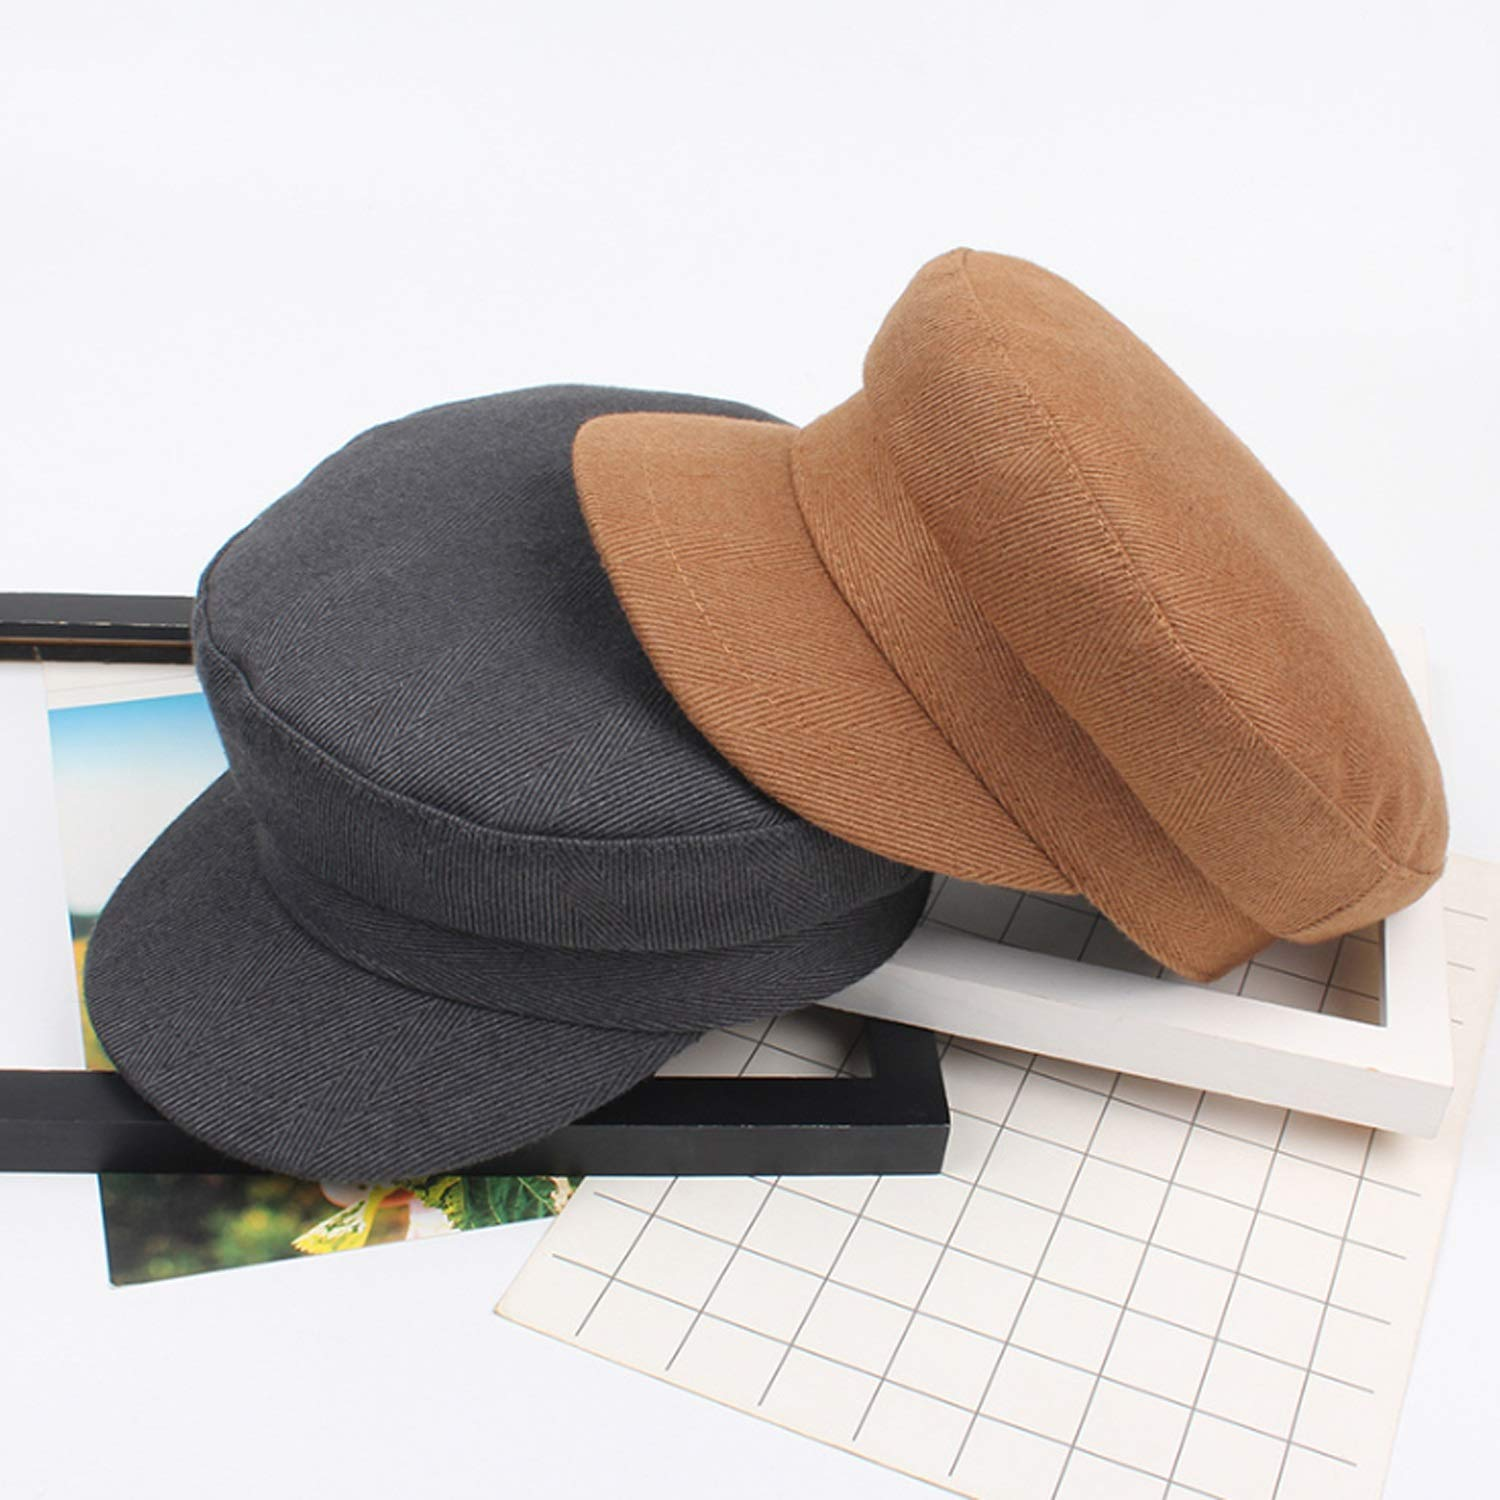 VAXT Direct Hat Literature Wild Hat Fall /& Winter Leisure Retro Bland Top Caps Unvarnished Beret